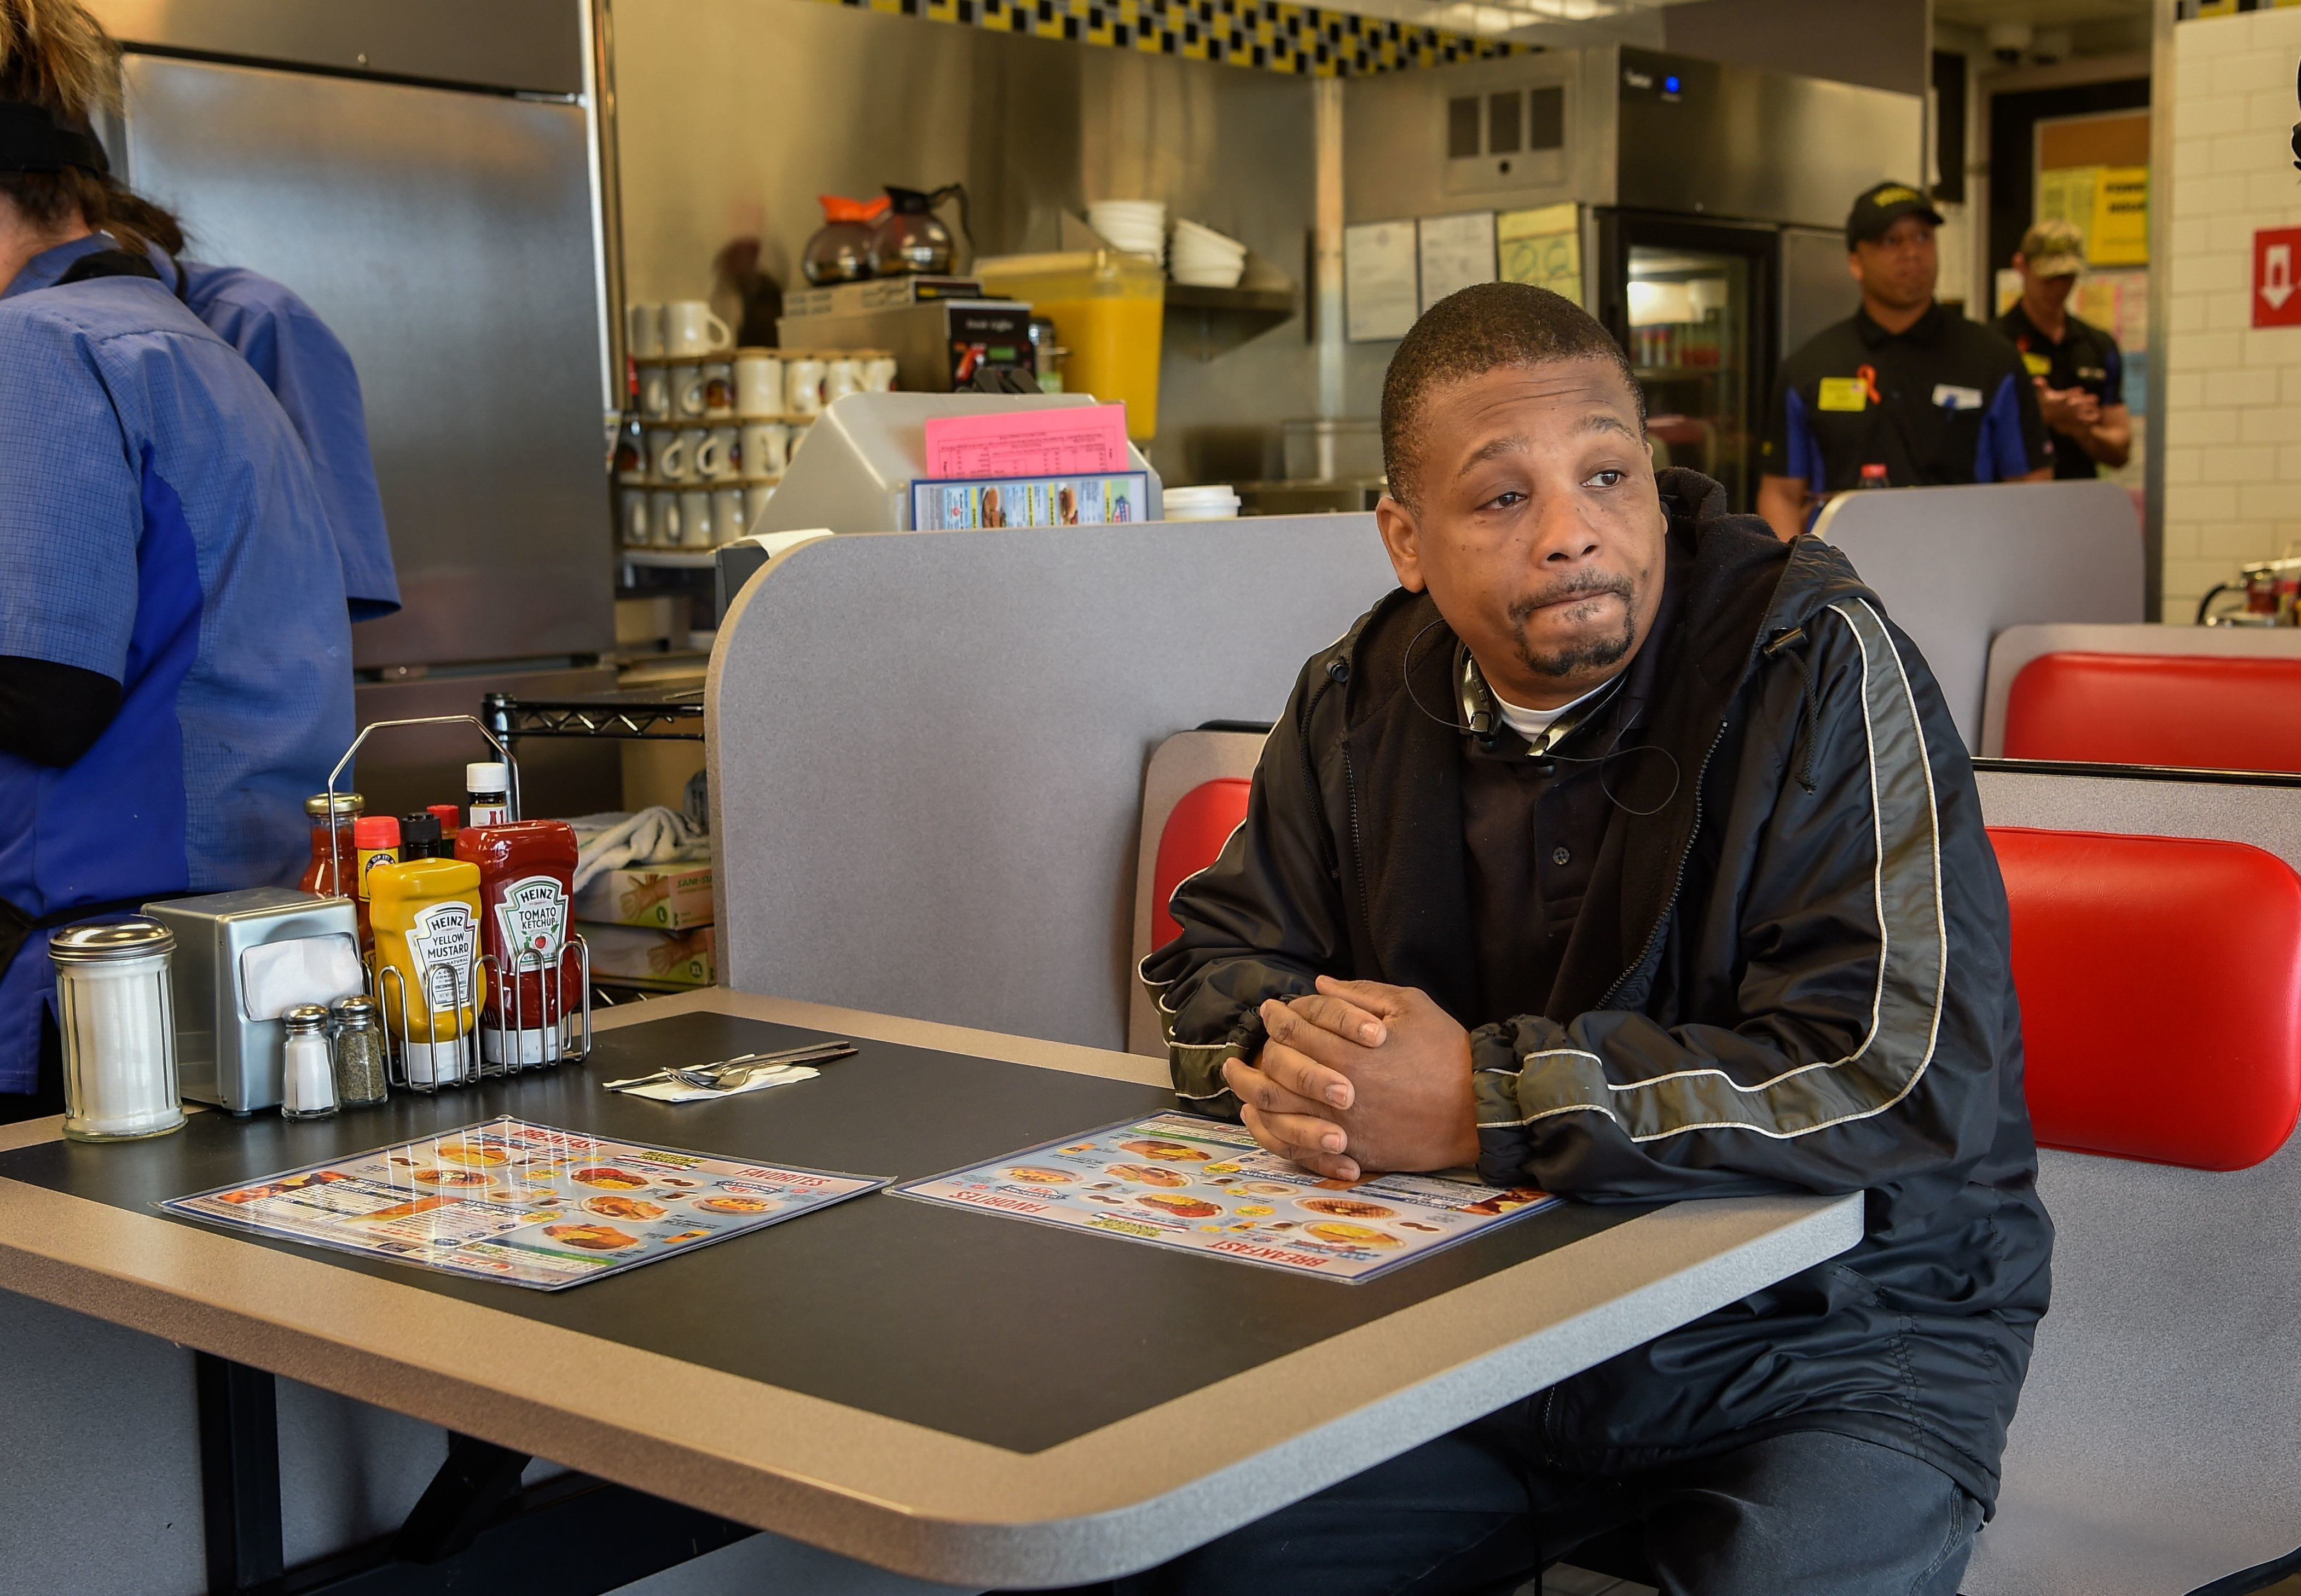 Ronald Page becomes emotional as he waits for his breakfast at the reopened Waffle House in Antioch on April 25, 2018. Page's daughter was a sorority sister of DeEbony Groves, one of the victims of the shooting.